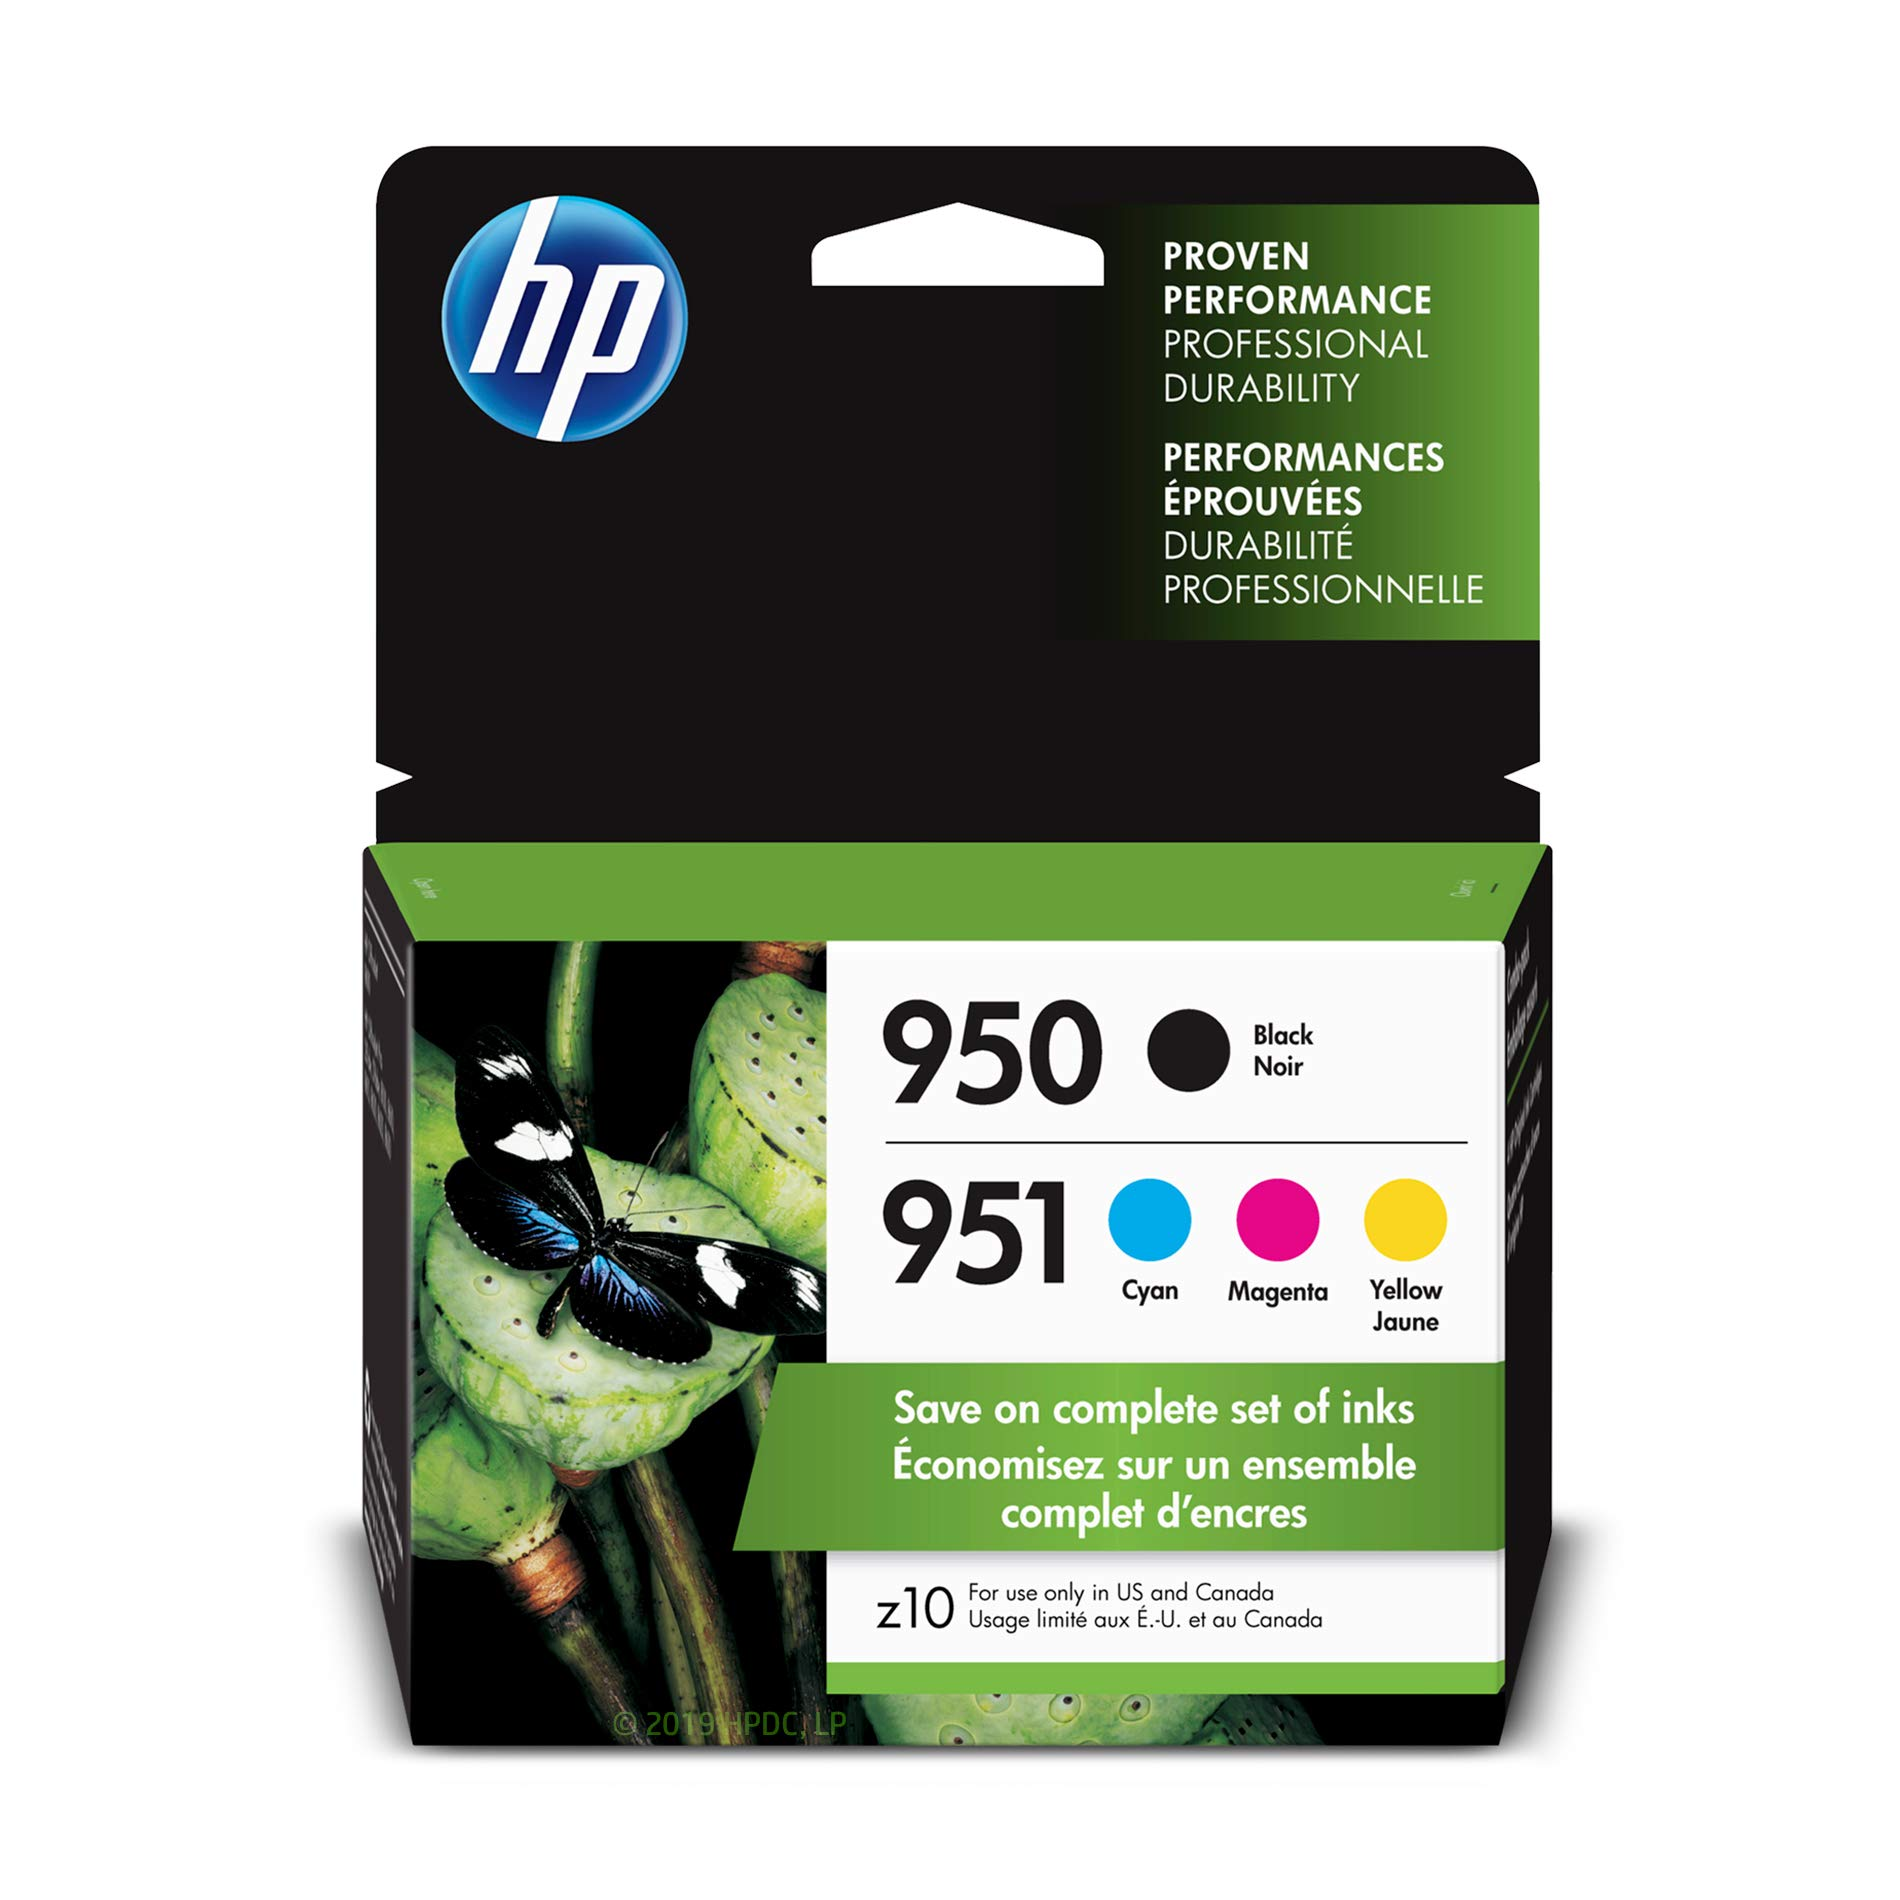 HP 950 & 951 | 4 Ink Cartridges | Black, Cyan, Magenta, Yellow | CN049AN, CN050AN, CN051AN, CN052AN by HP